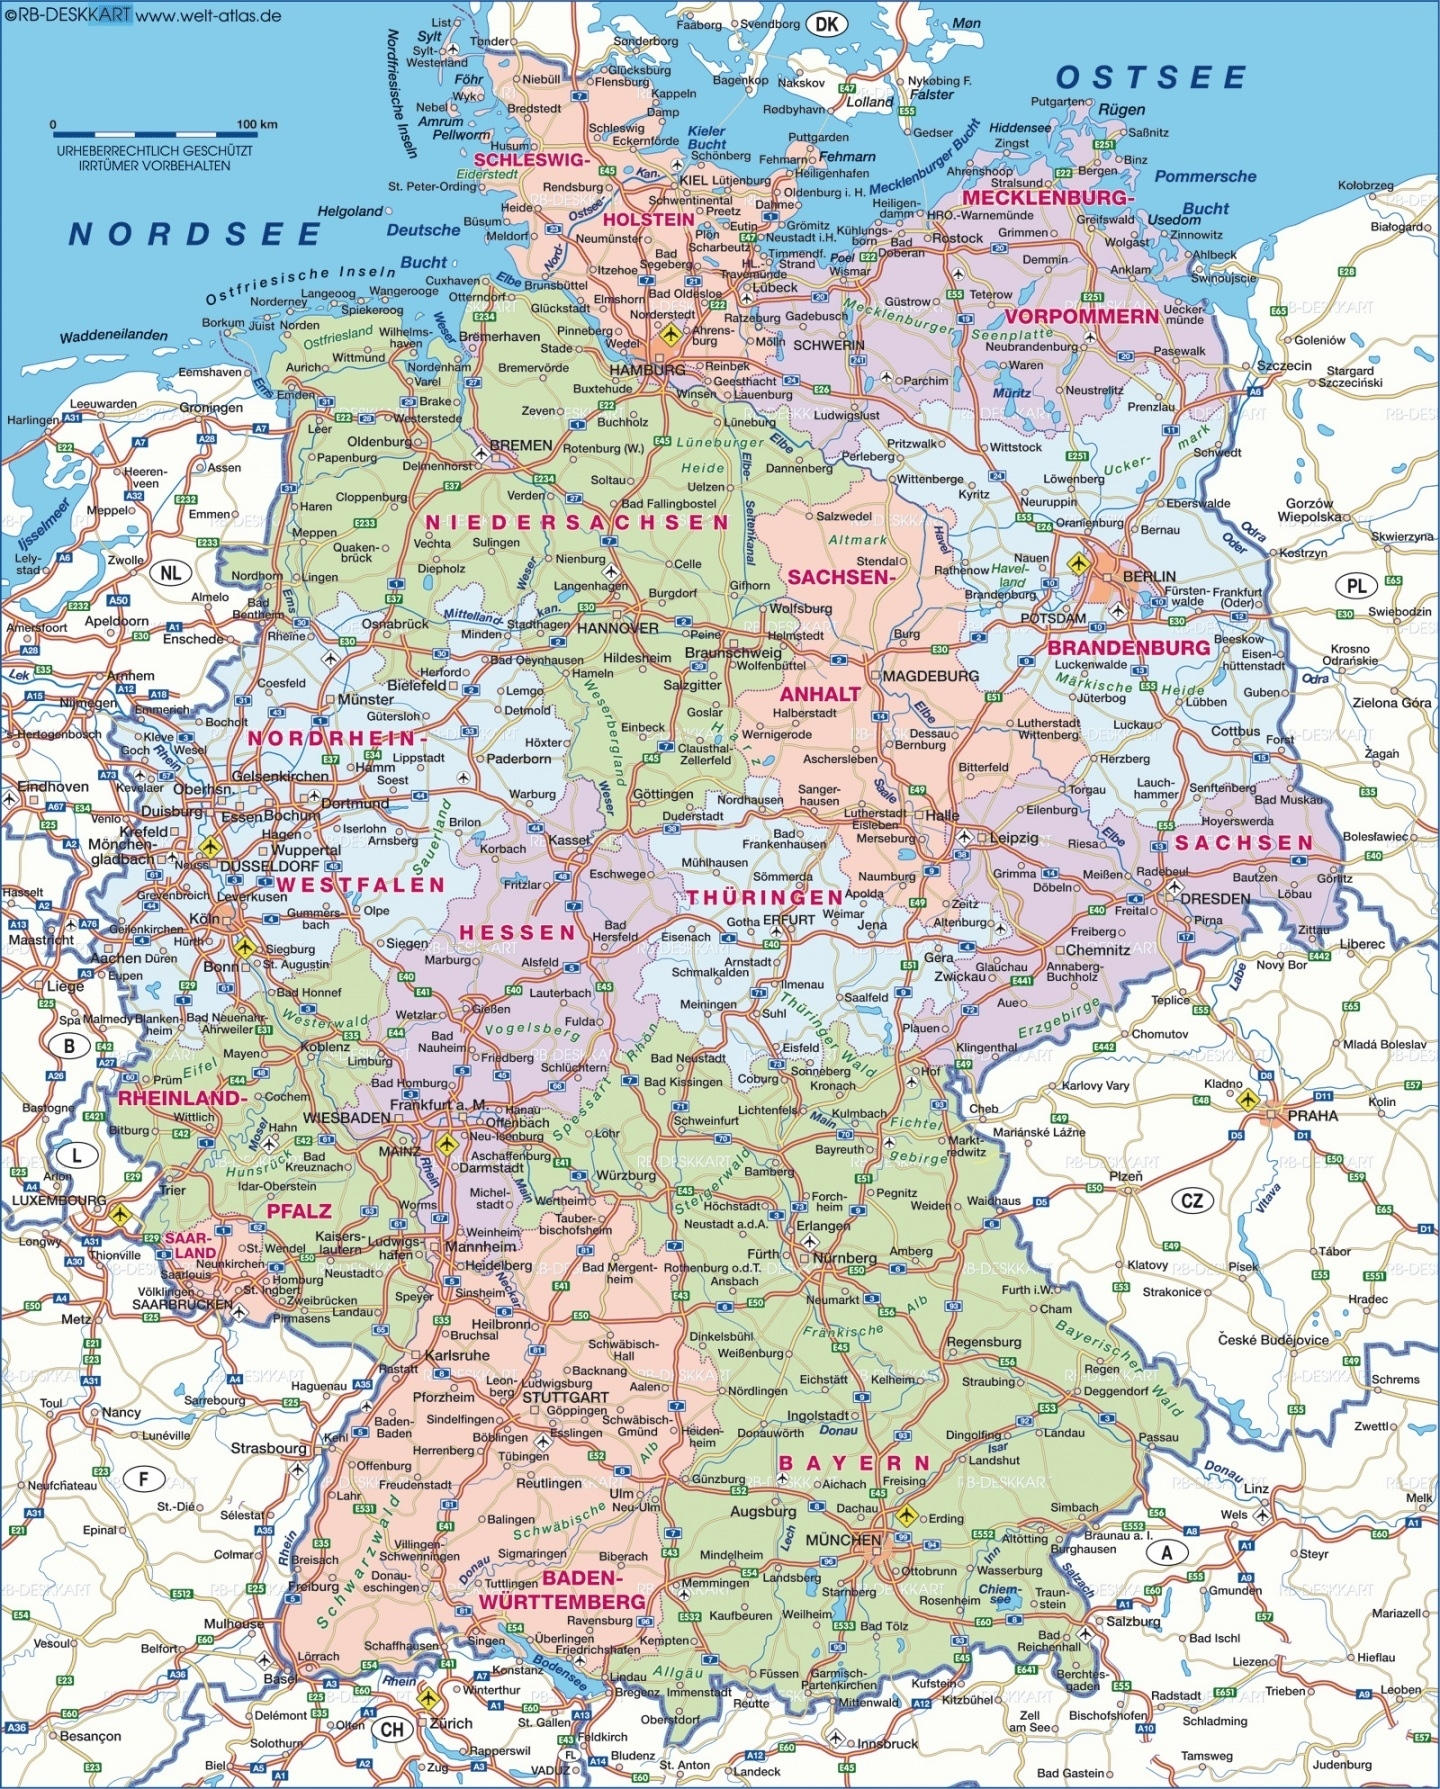 Large Map Of Germany And Travel Information | Download Free Large in Road Map Germany Free